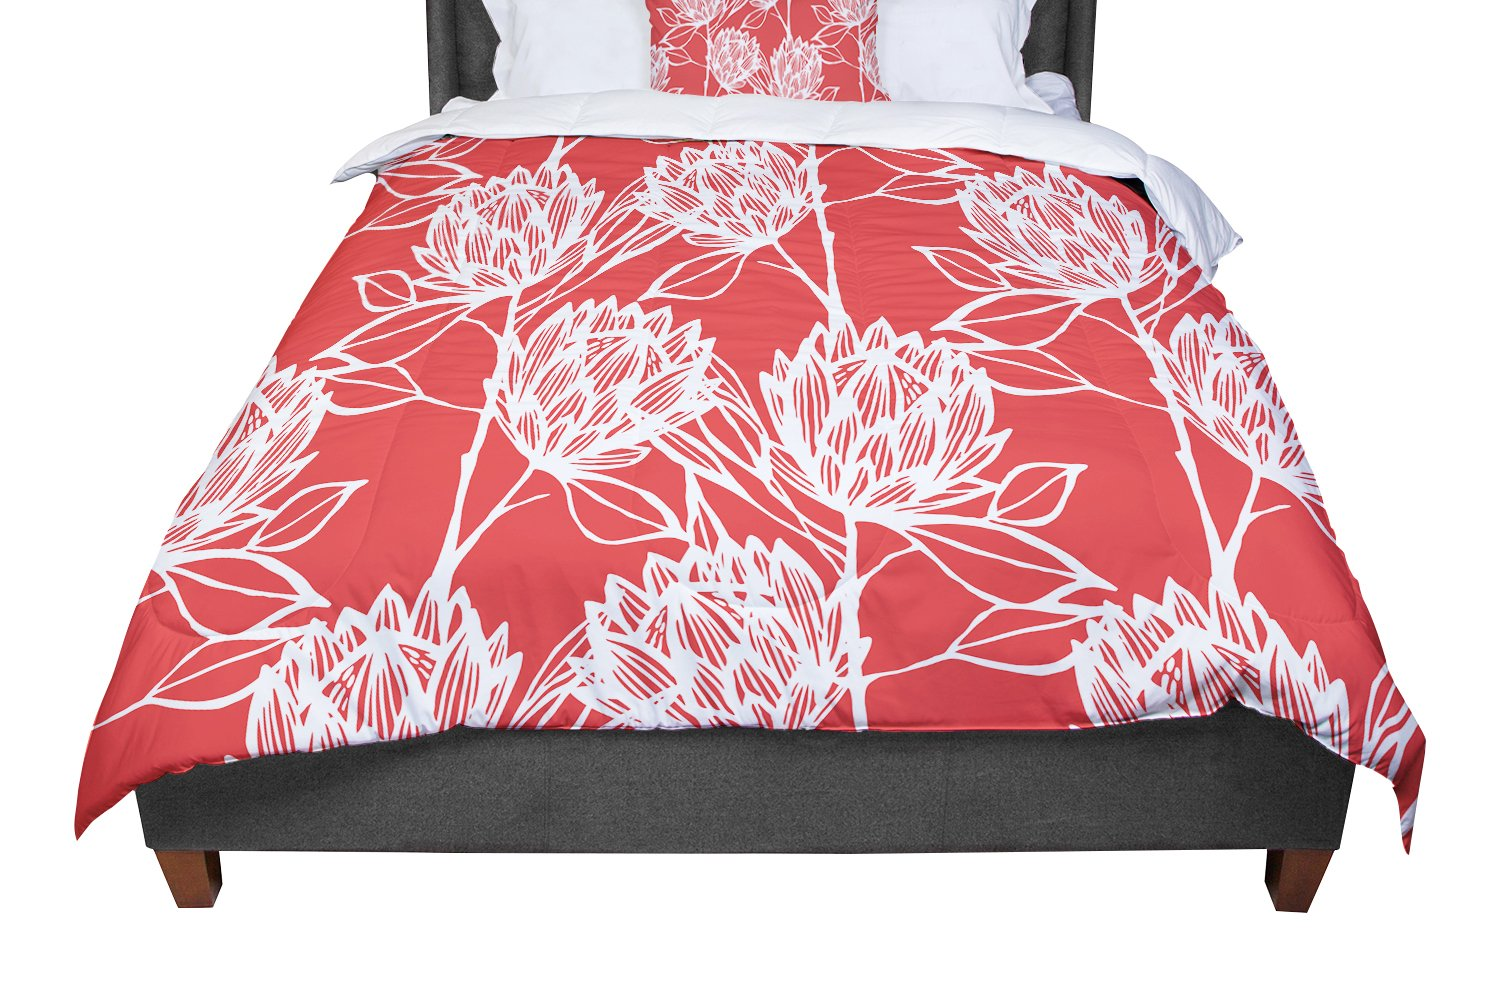 KESS InHouse Gill Eggleston 'Protea Strawberry White' Red Flowers Queen Comforter, 88' X 88'